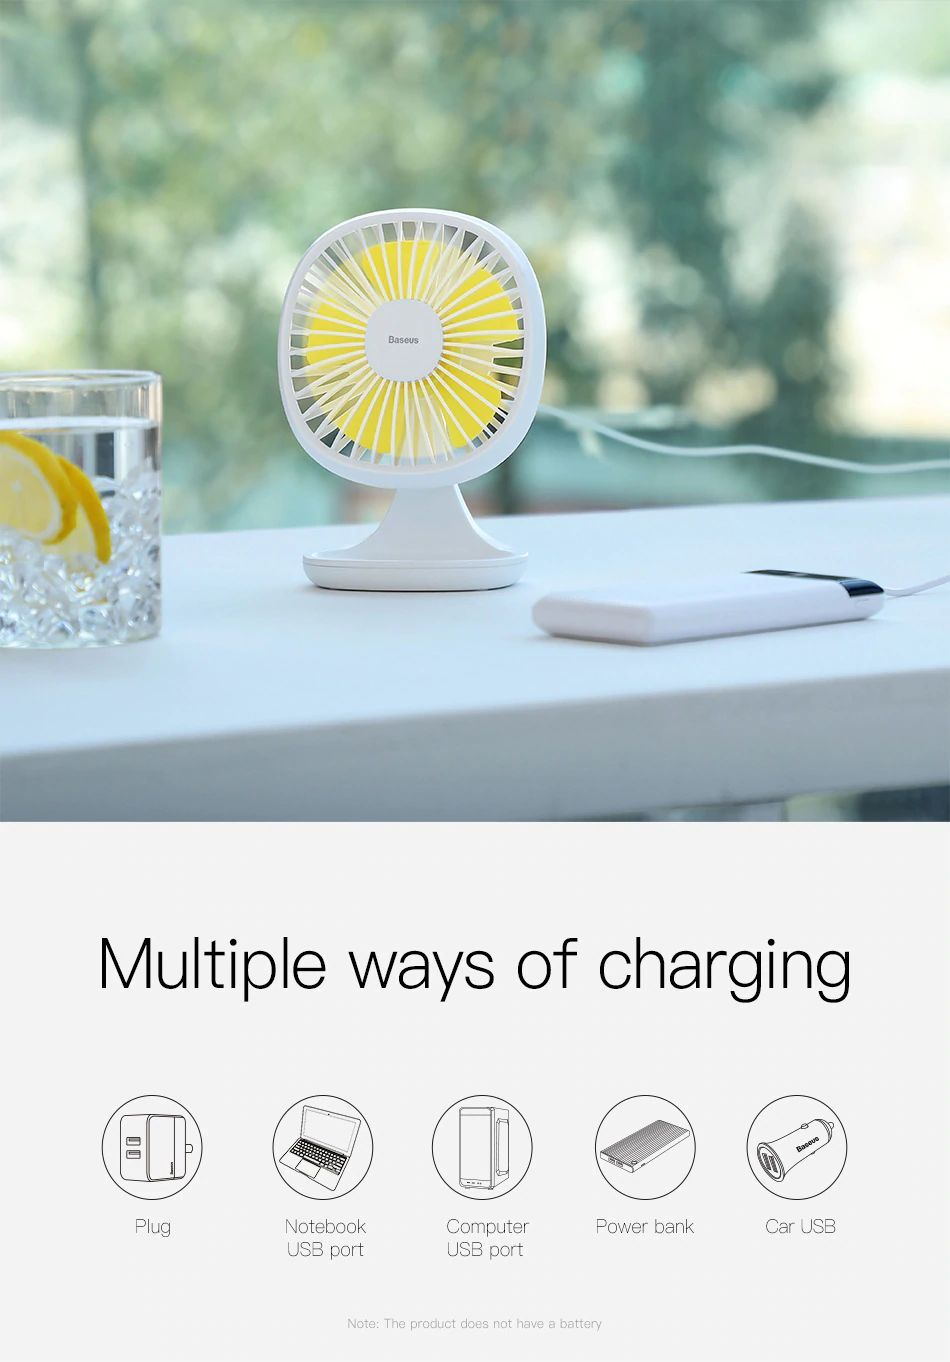 Baseus Portable Usb Fan 3 Speed Mini Fan (12)